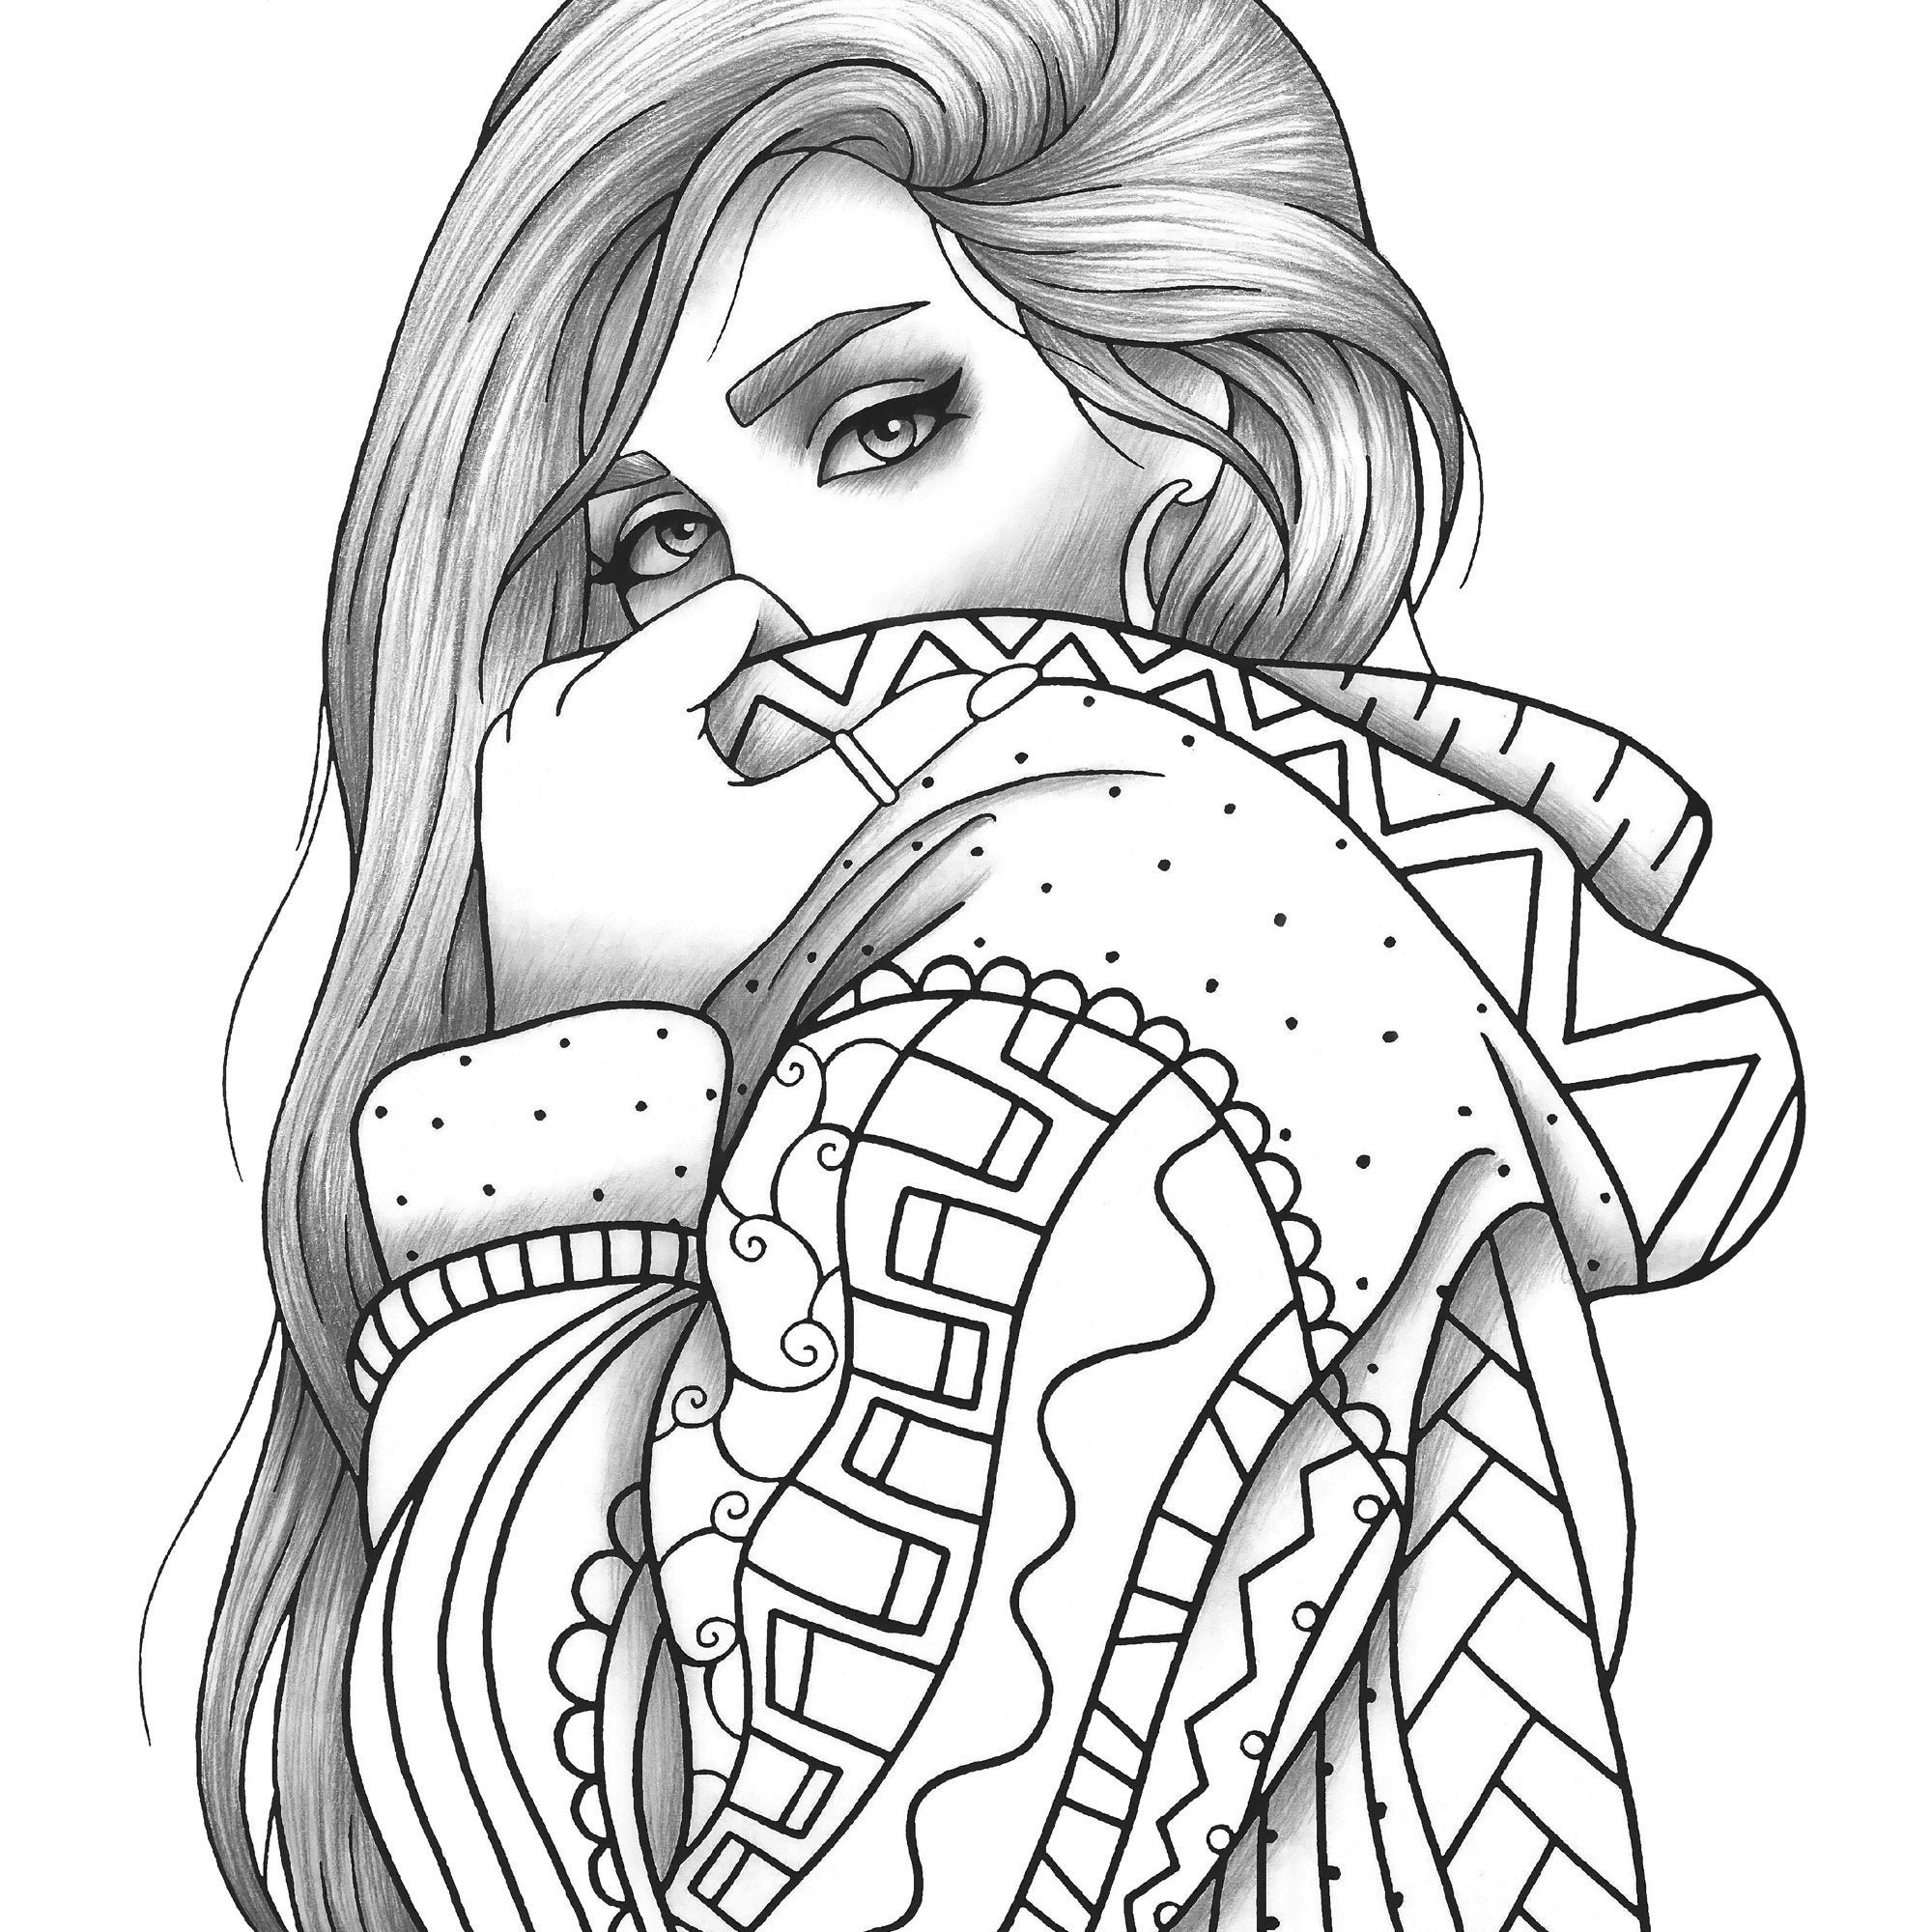 coloring pages for girls dresses adult coloring page girl portrait and clothes colouring pages dresses girls for coloring